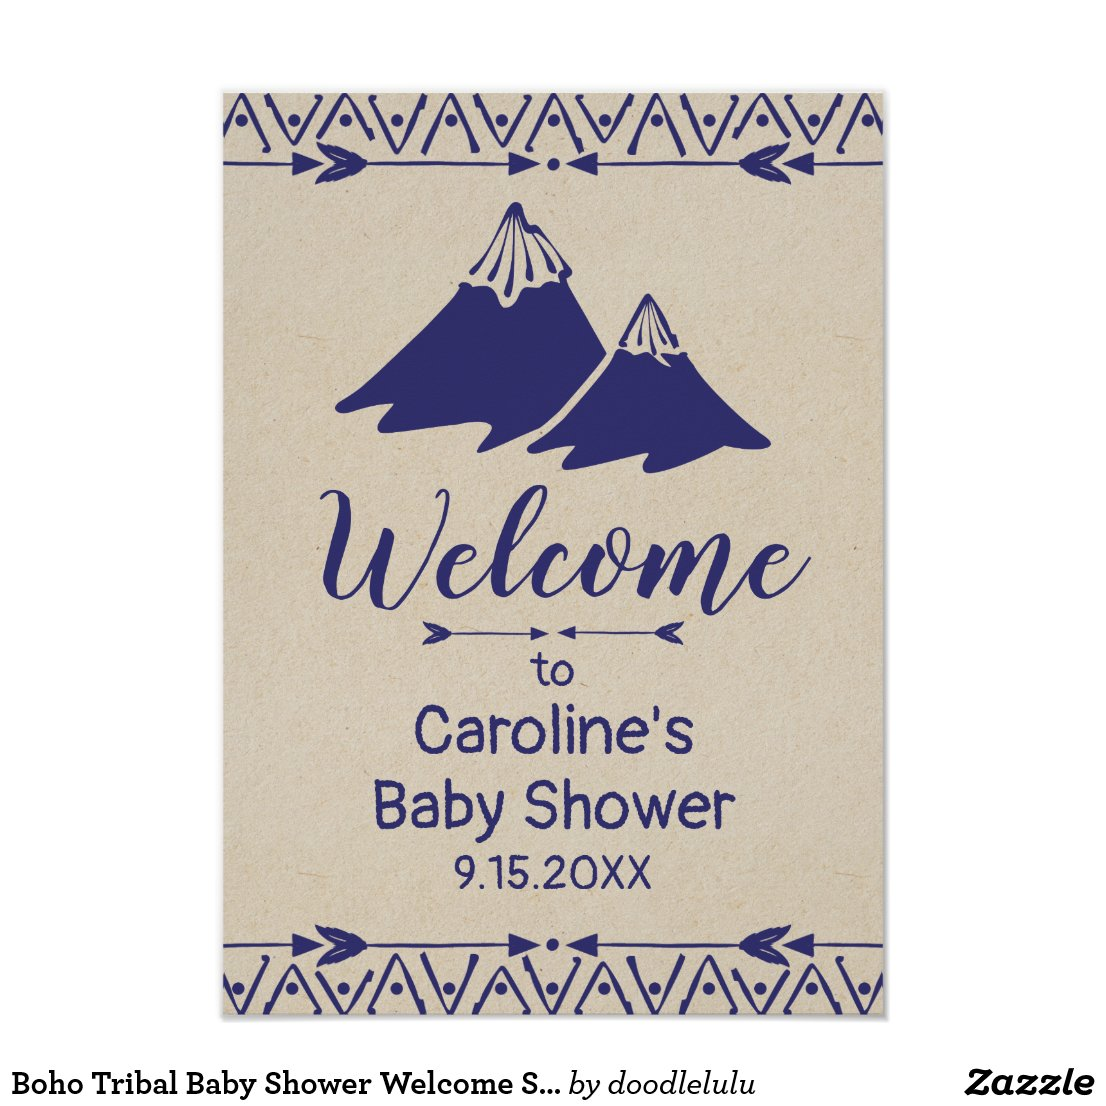 Boho Tribal Baby Shower Welcome Sign